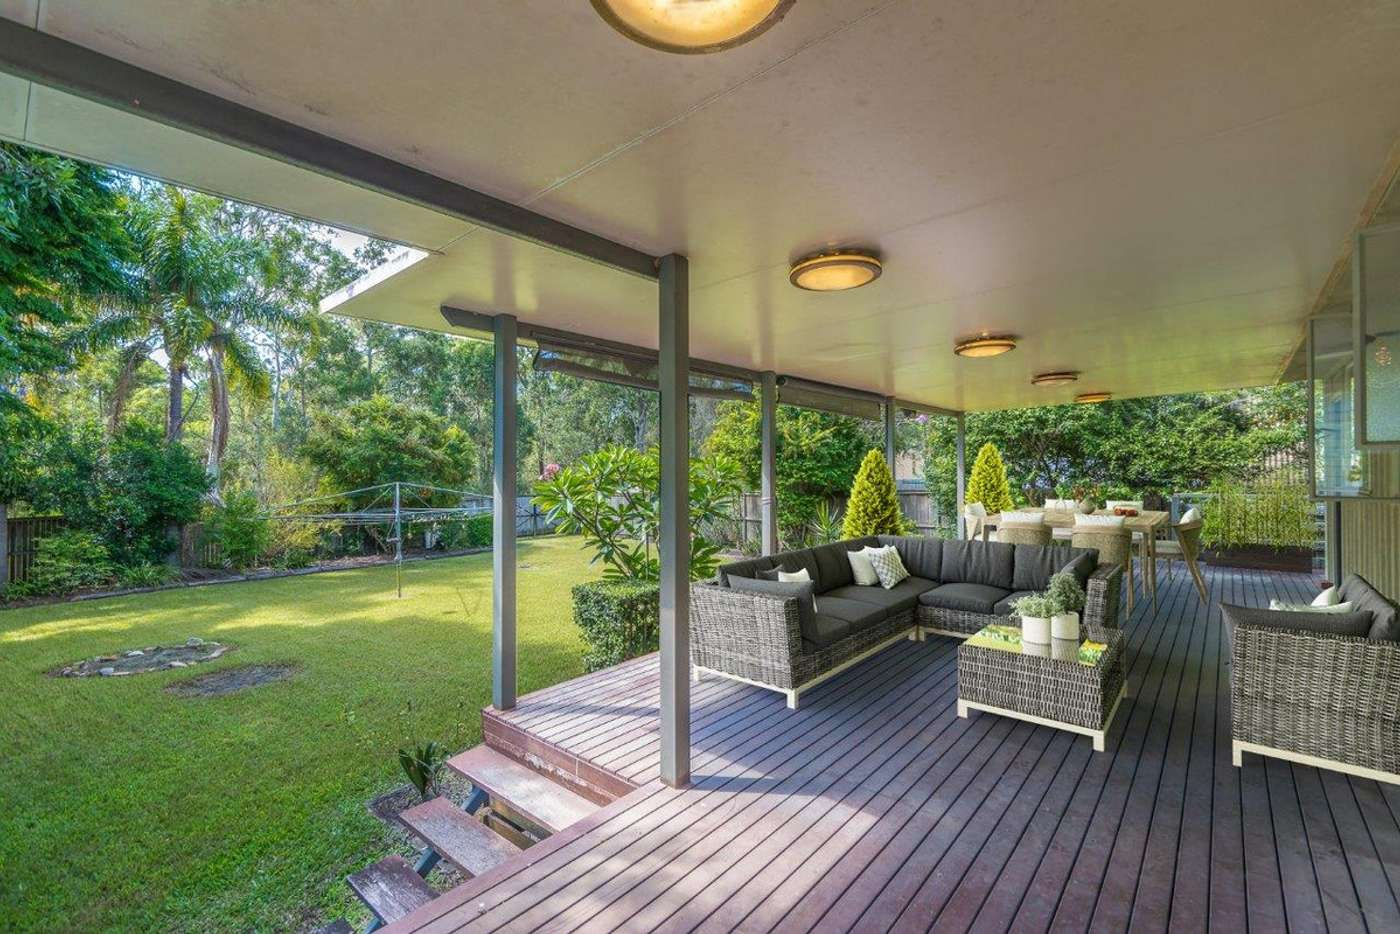 Main view of Homely house listing, 30 Wau Road, Darra QLD 4076